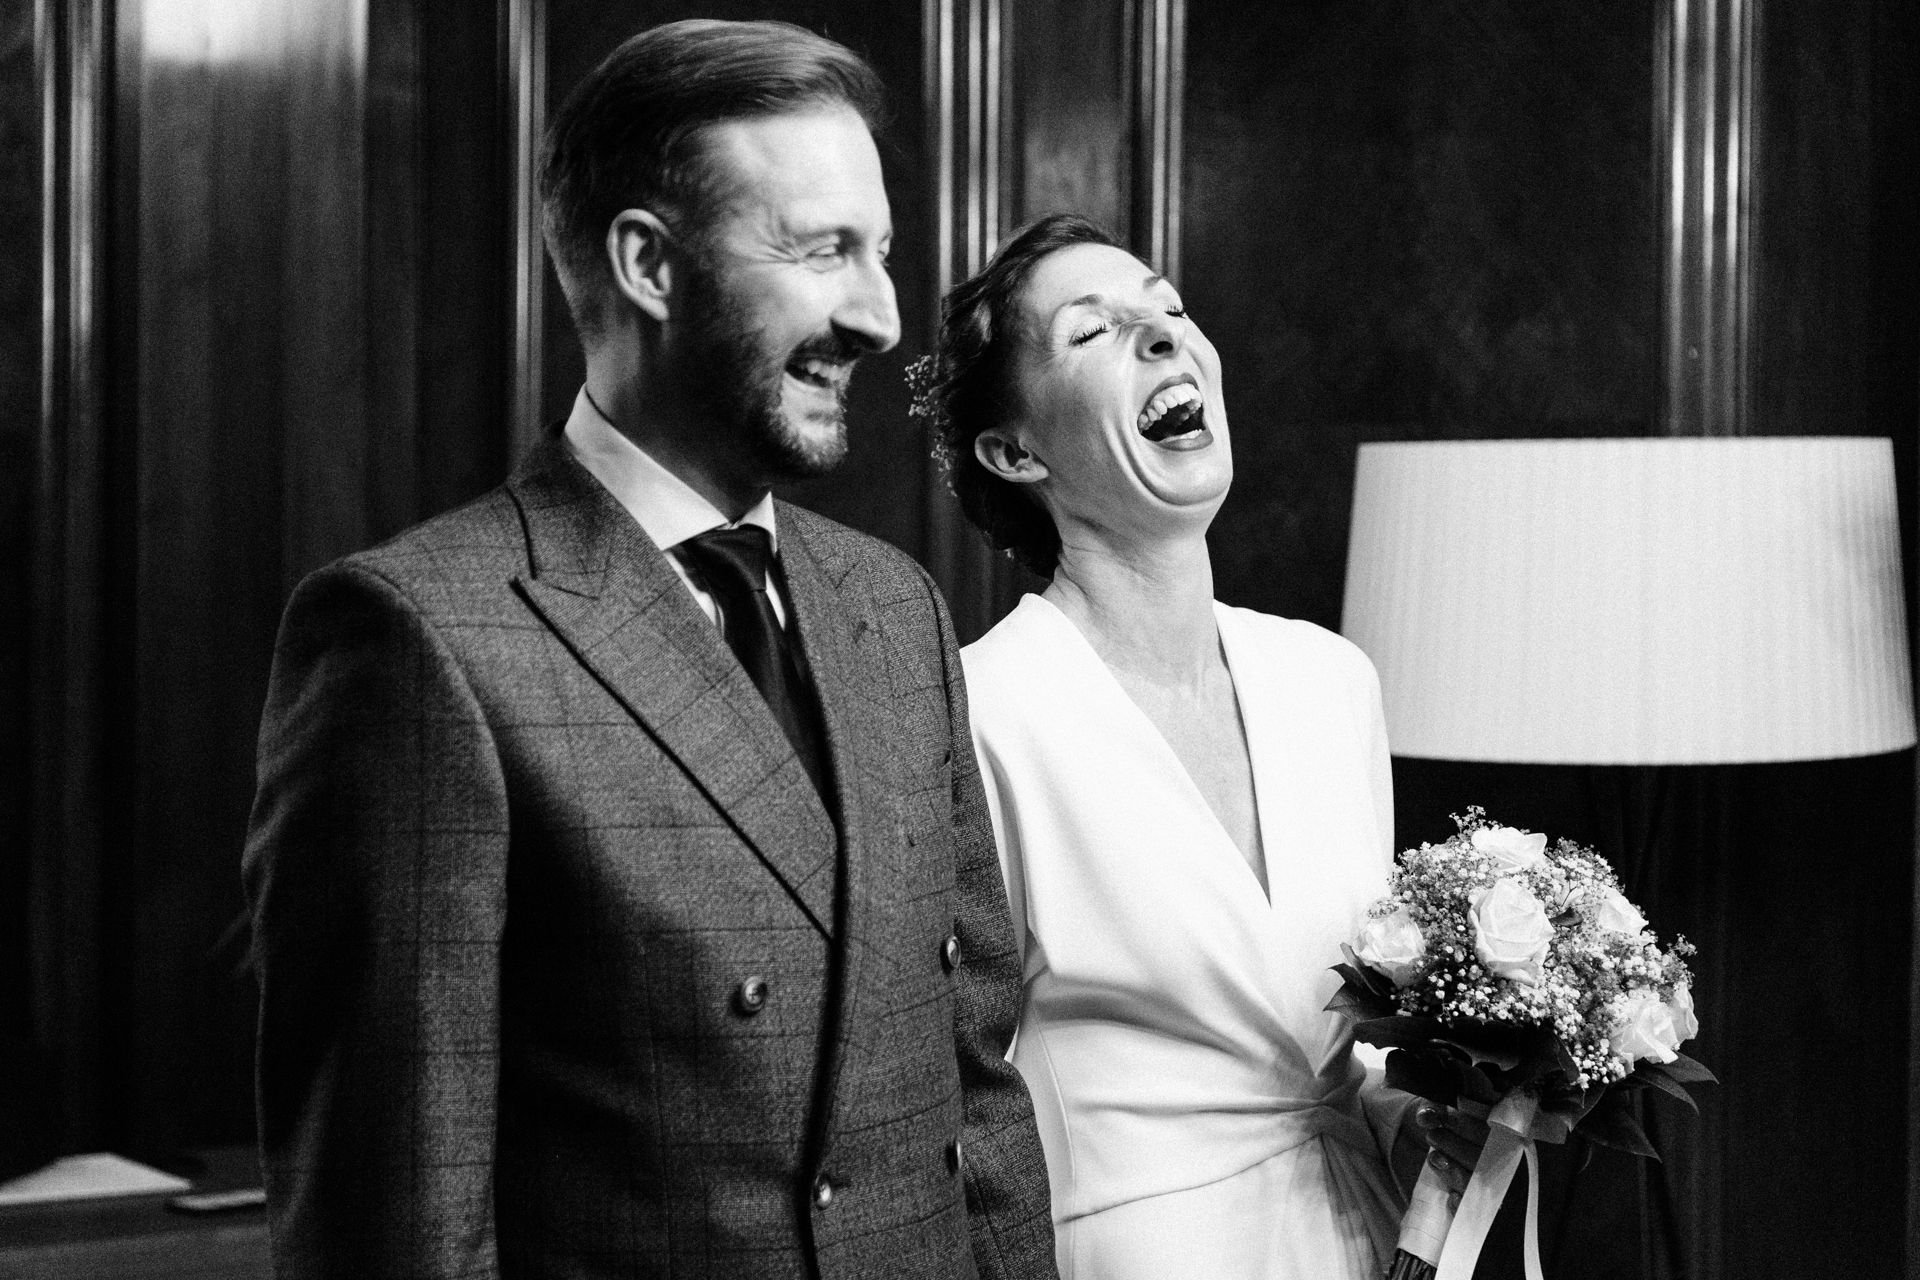 Central London Elopement Bride and Groom Pictures | There was lots of laughter during the ceremony